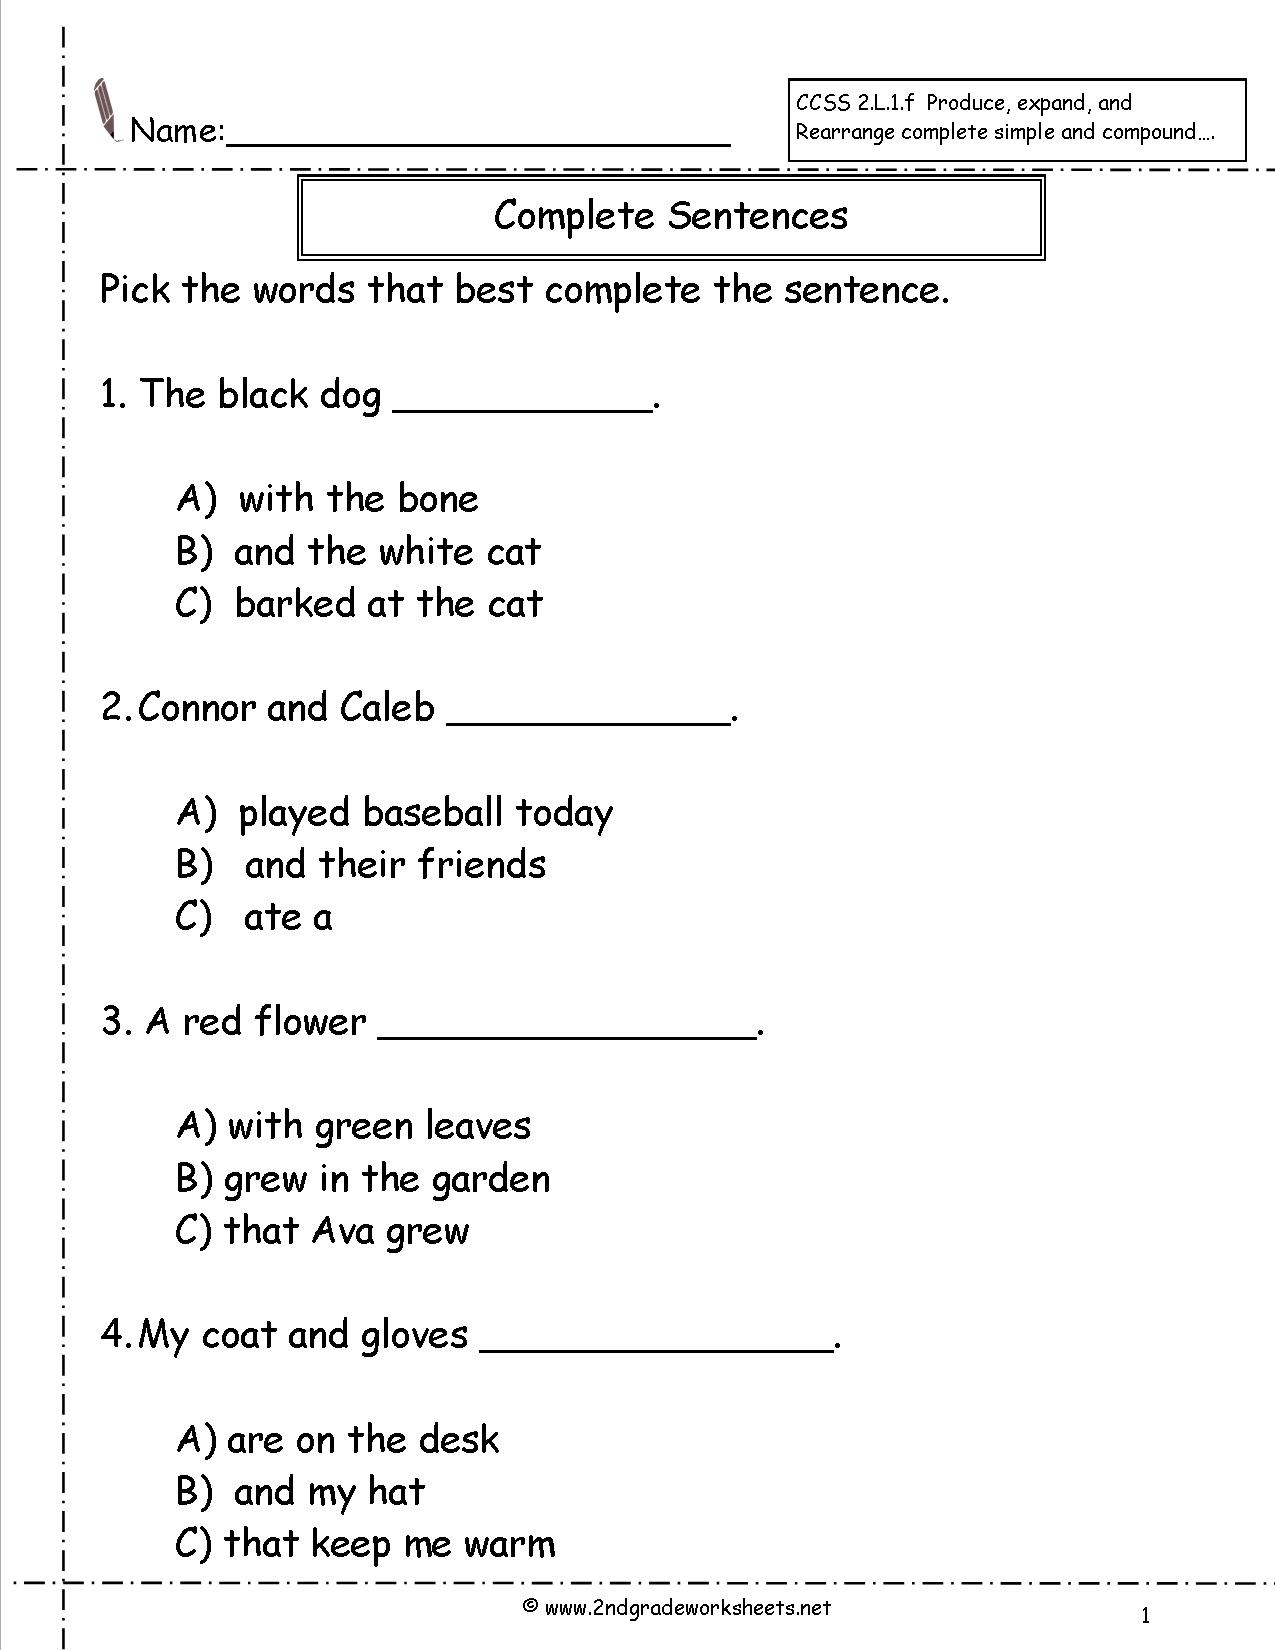 Copy Sentence Worksheet First Grade